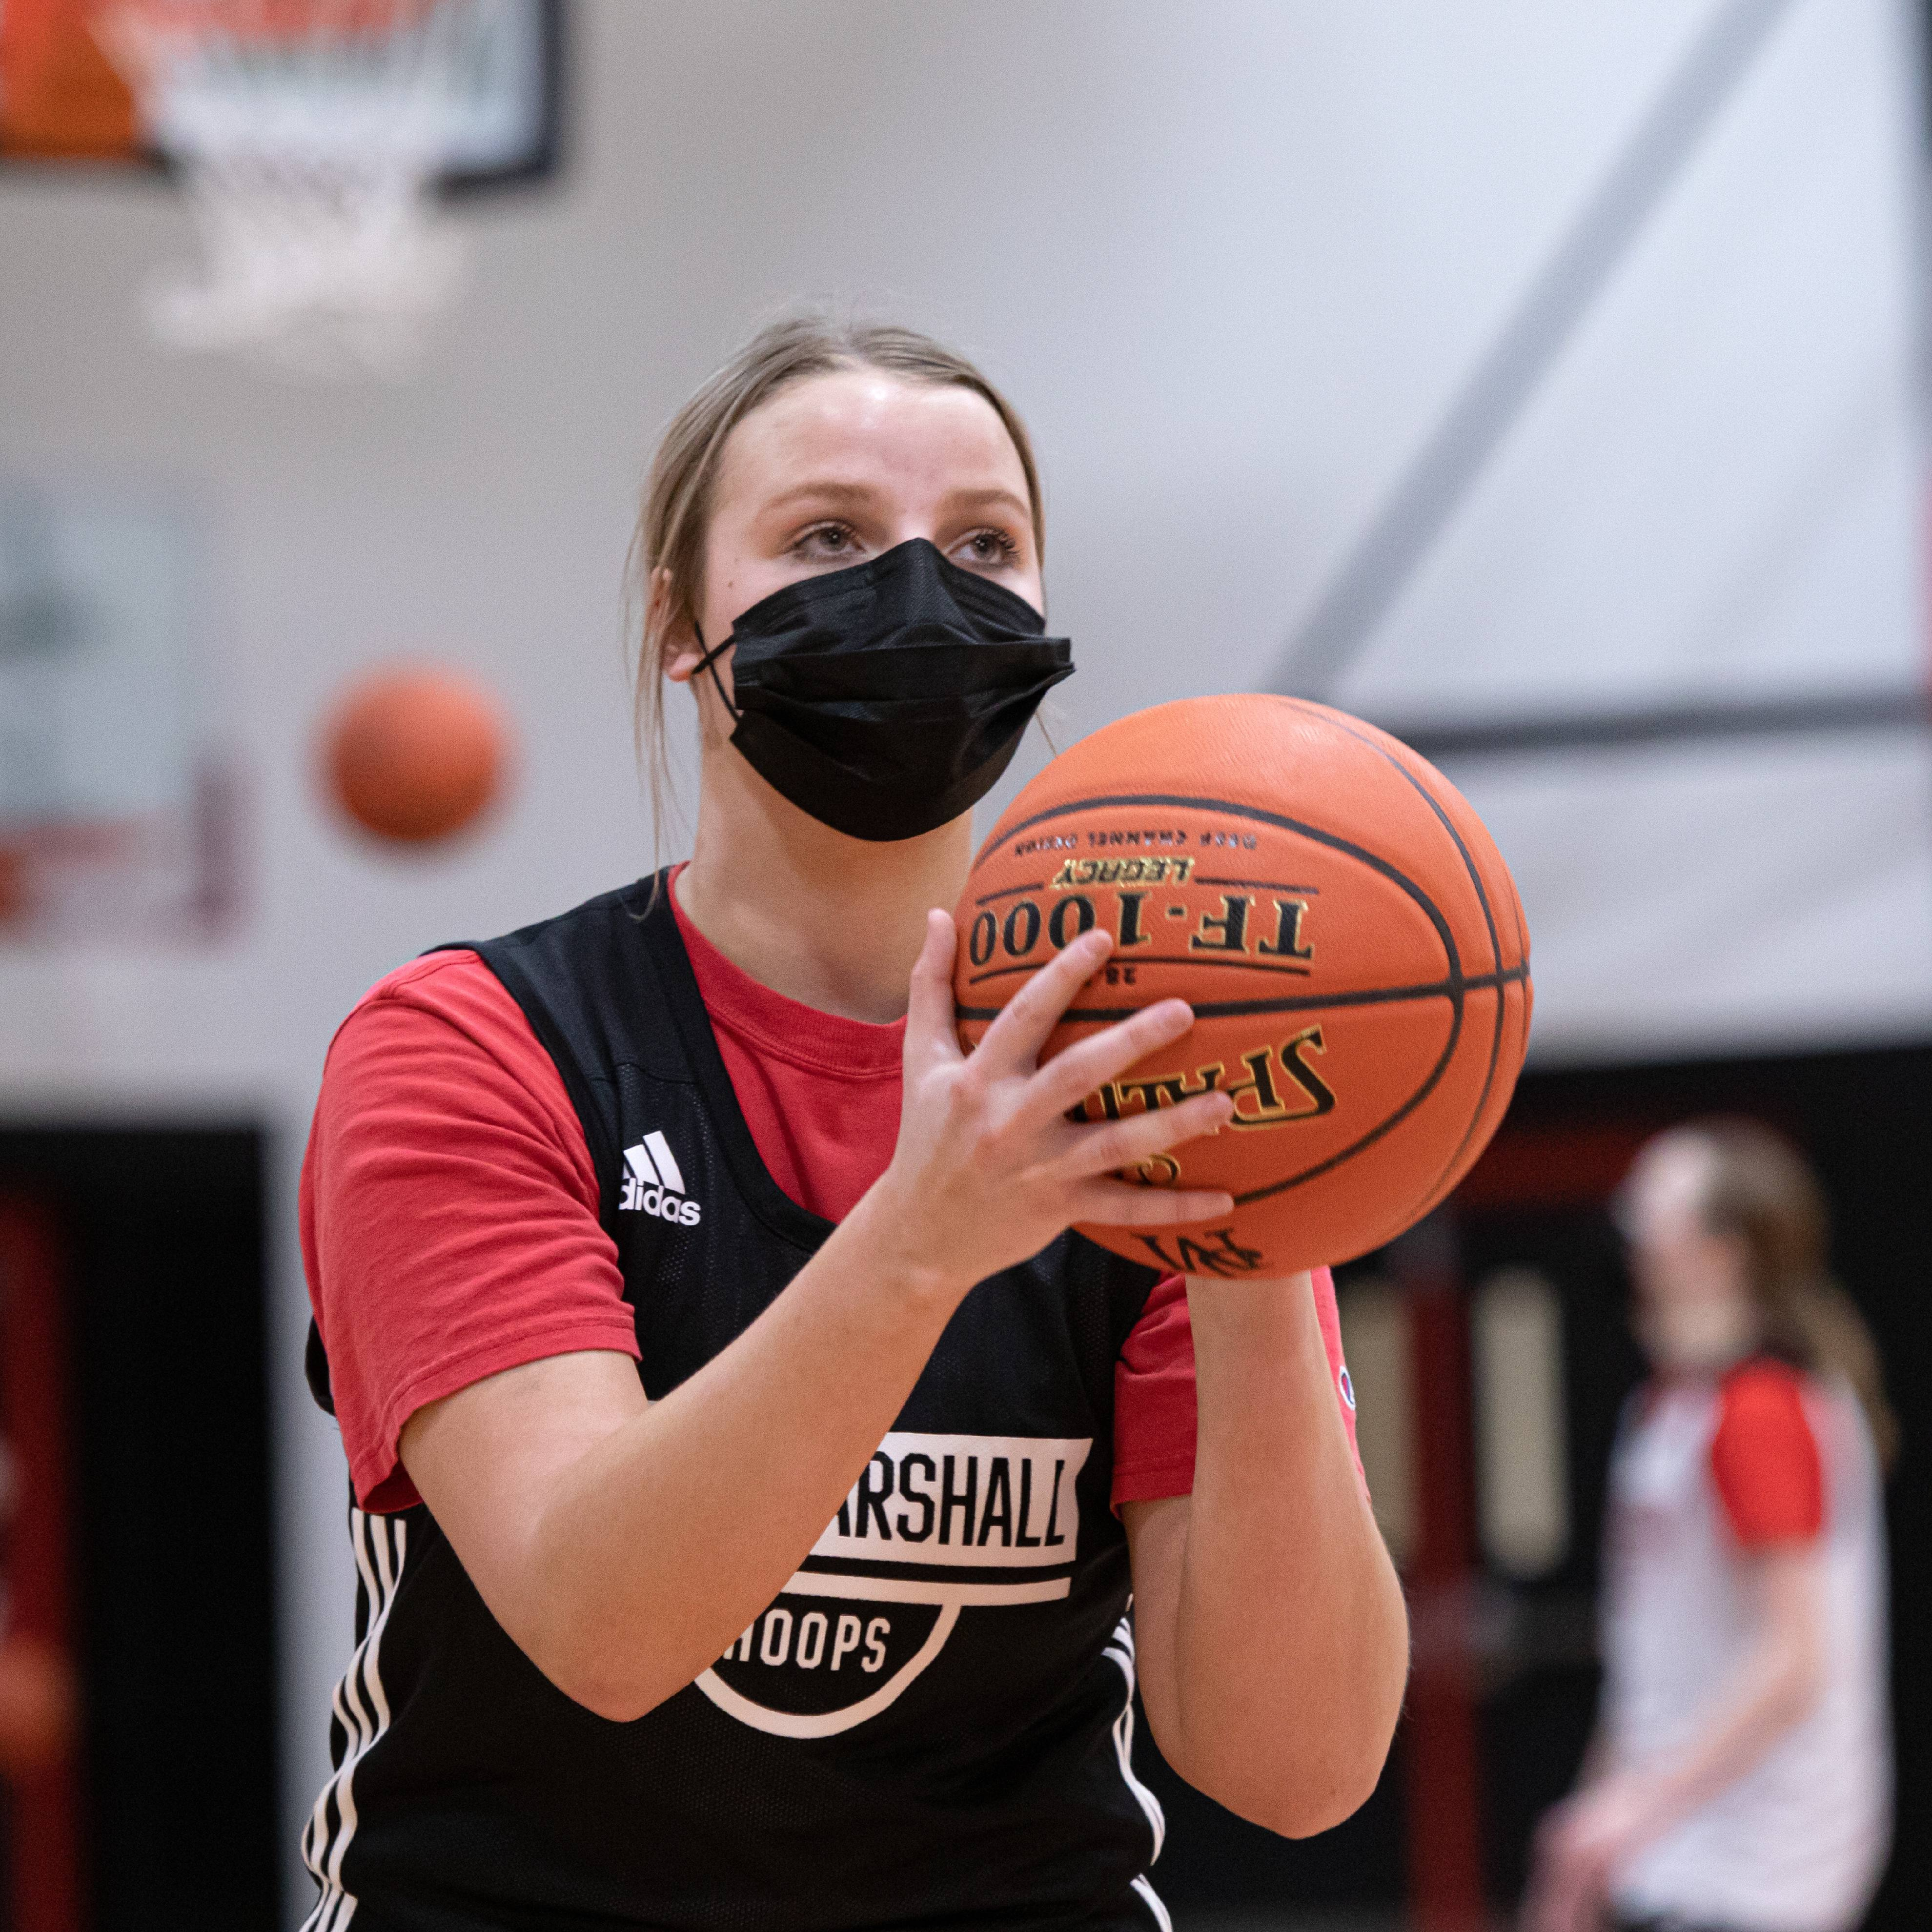 a high school basketball player, a white girl, wearing a uniform and face mask, getting ready to shoot a basketball